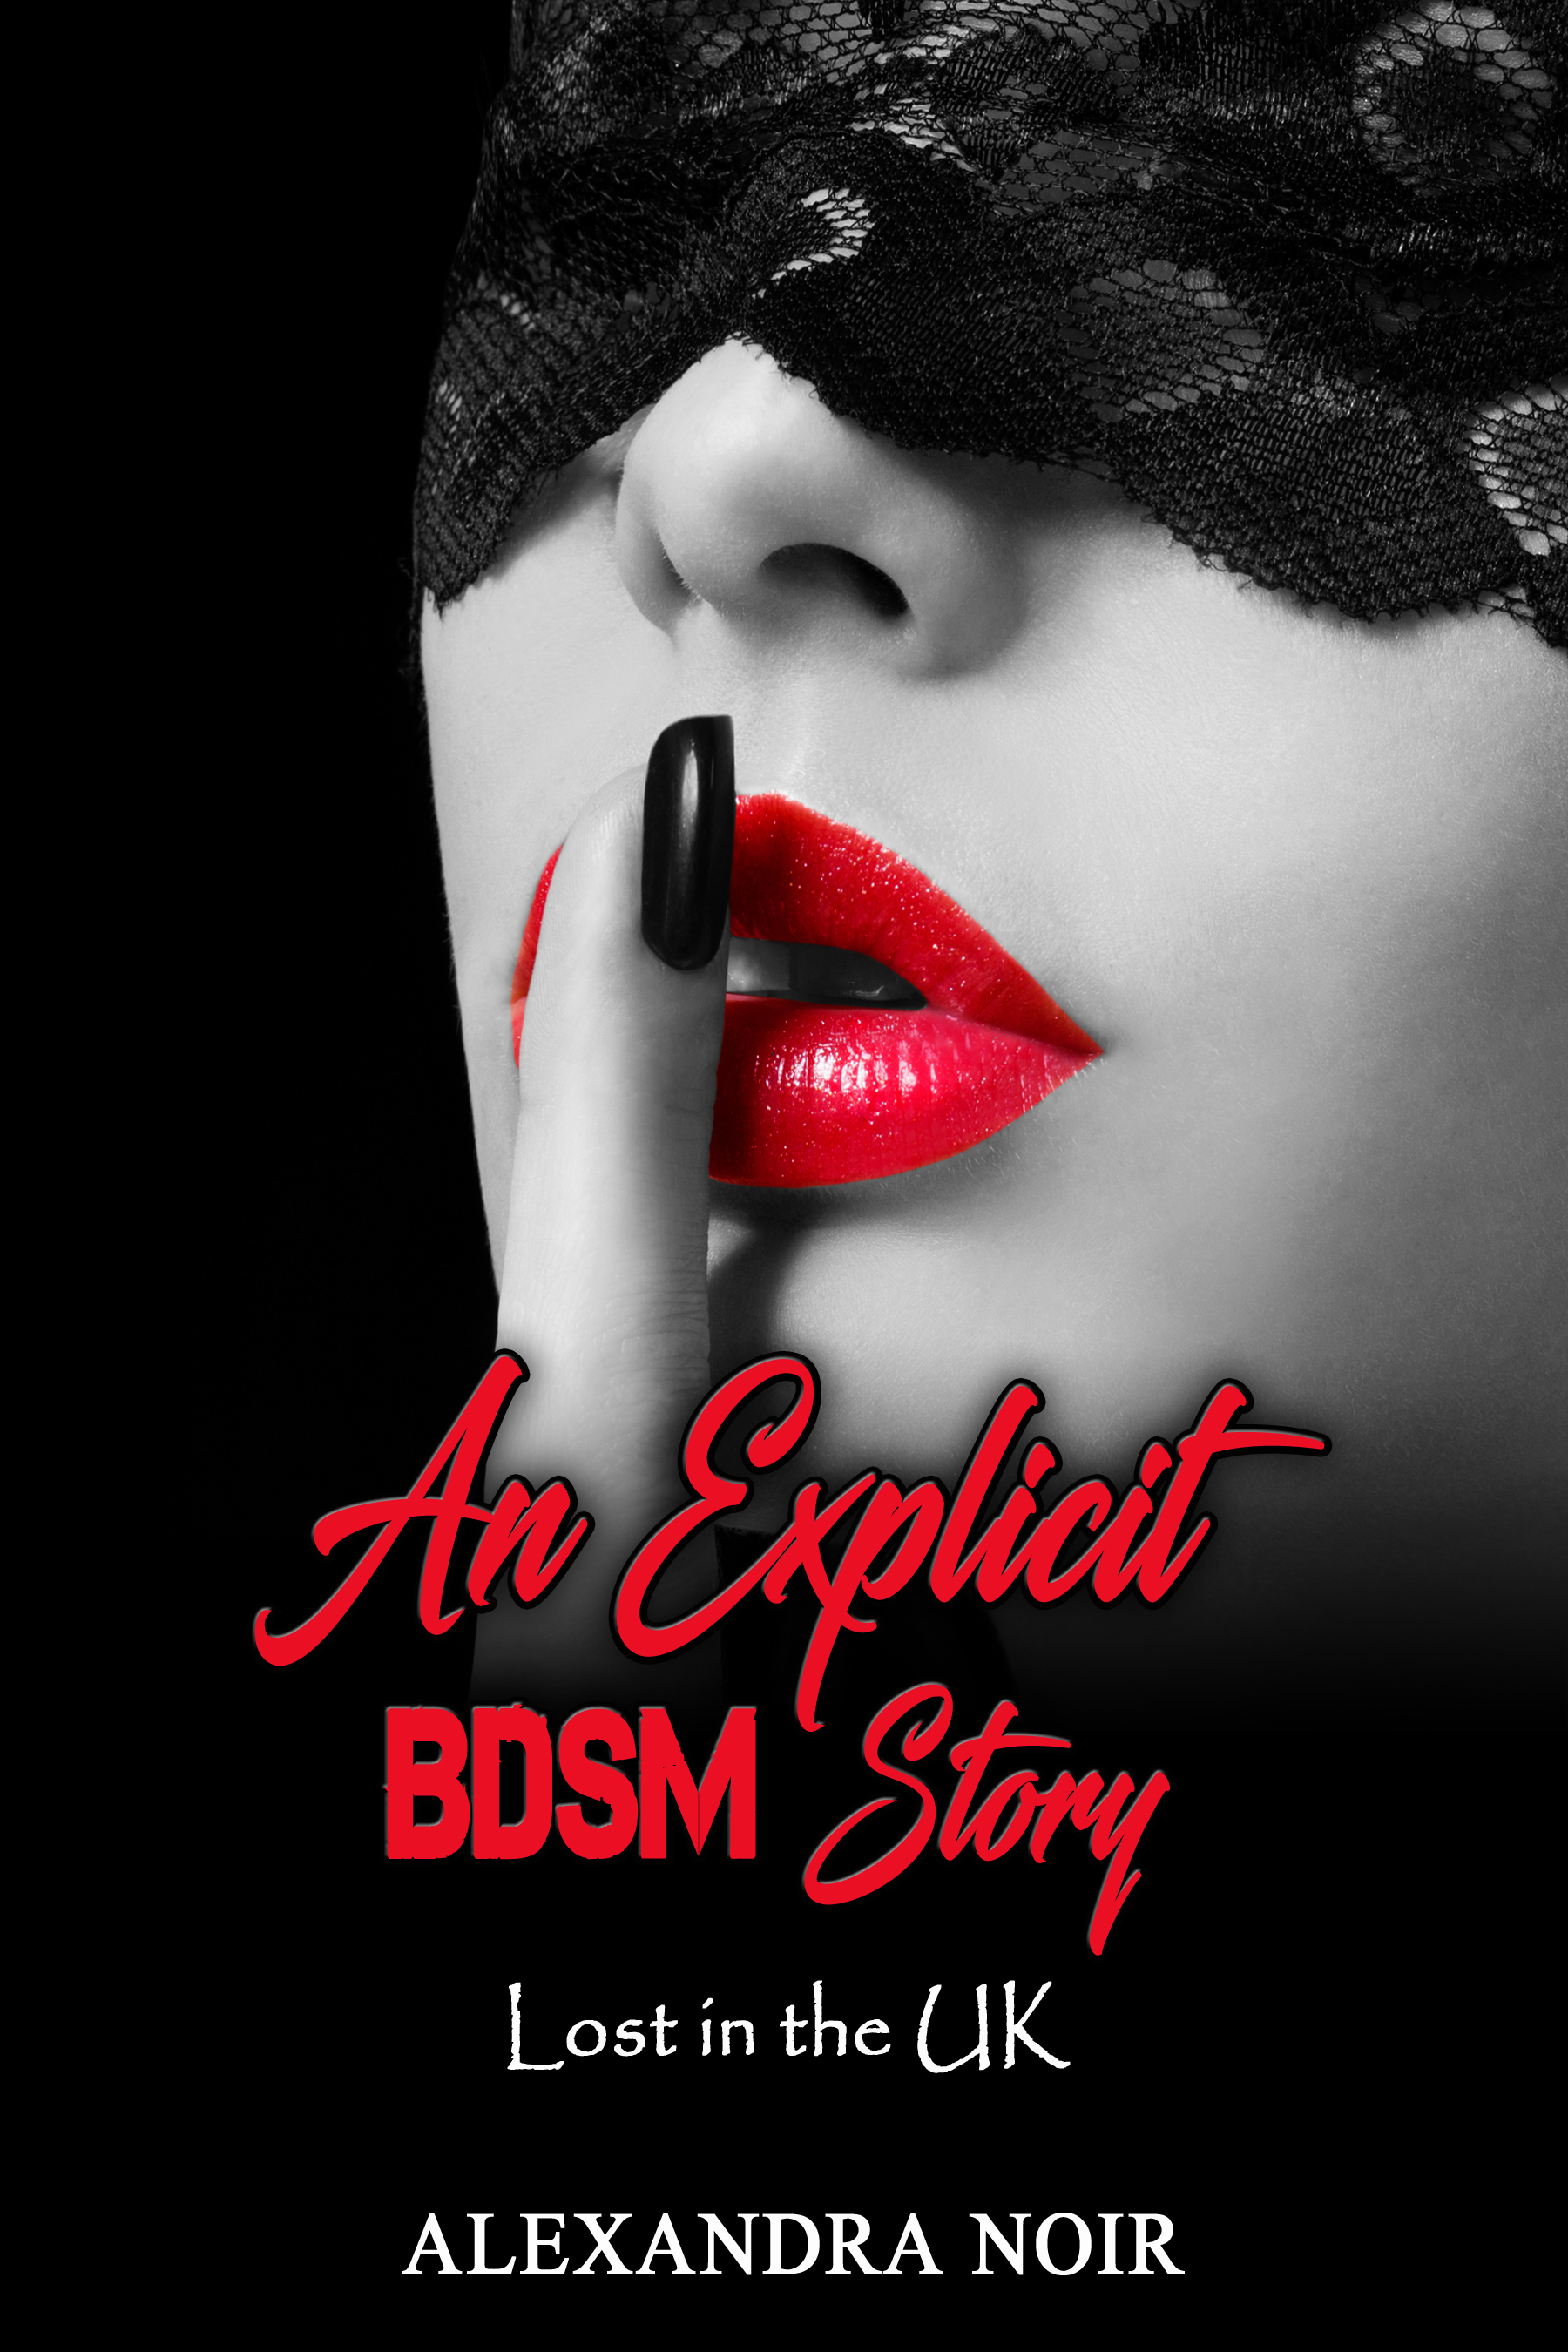 An Explicit BDSM Story - Lost in the UK